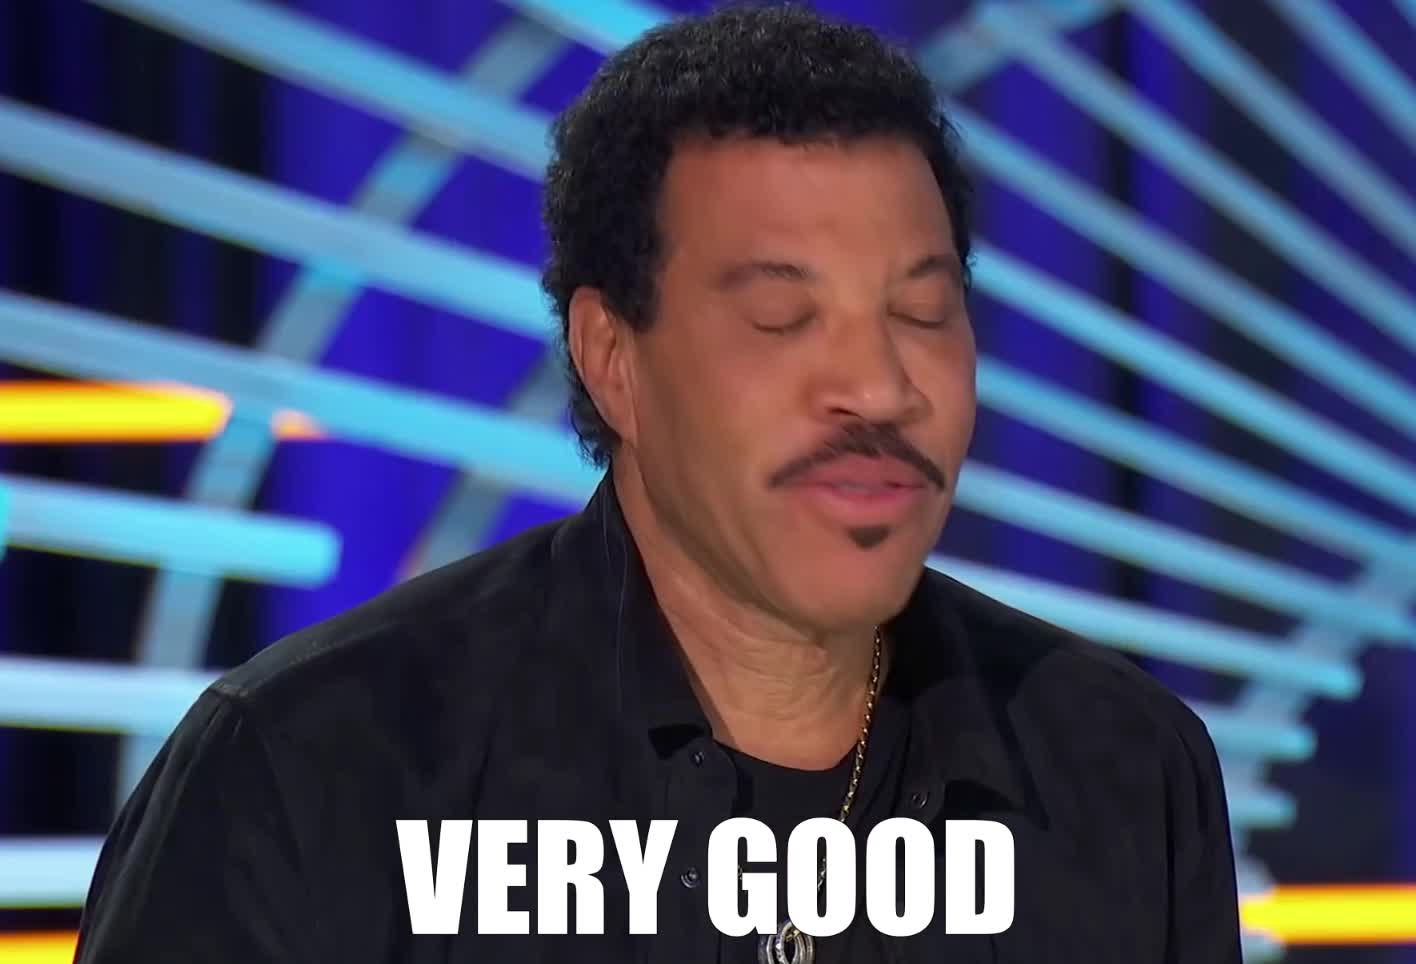 american, approve, bravo, congratulations, did, done, good, idol, it, lionel, made, message, of, proud, richie, speechless, very, well, you, you're, Lionel Richie is Speechless - American Idol 2019 GIFs